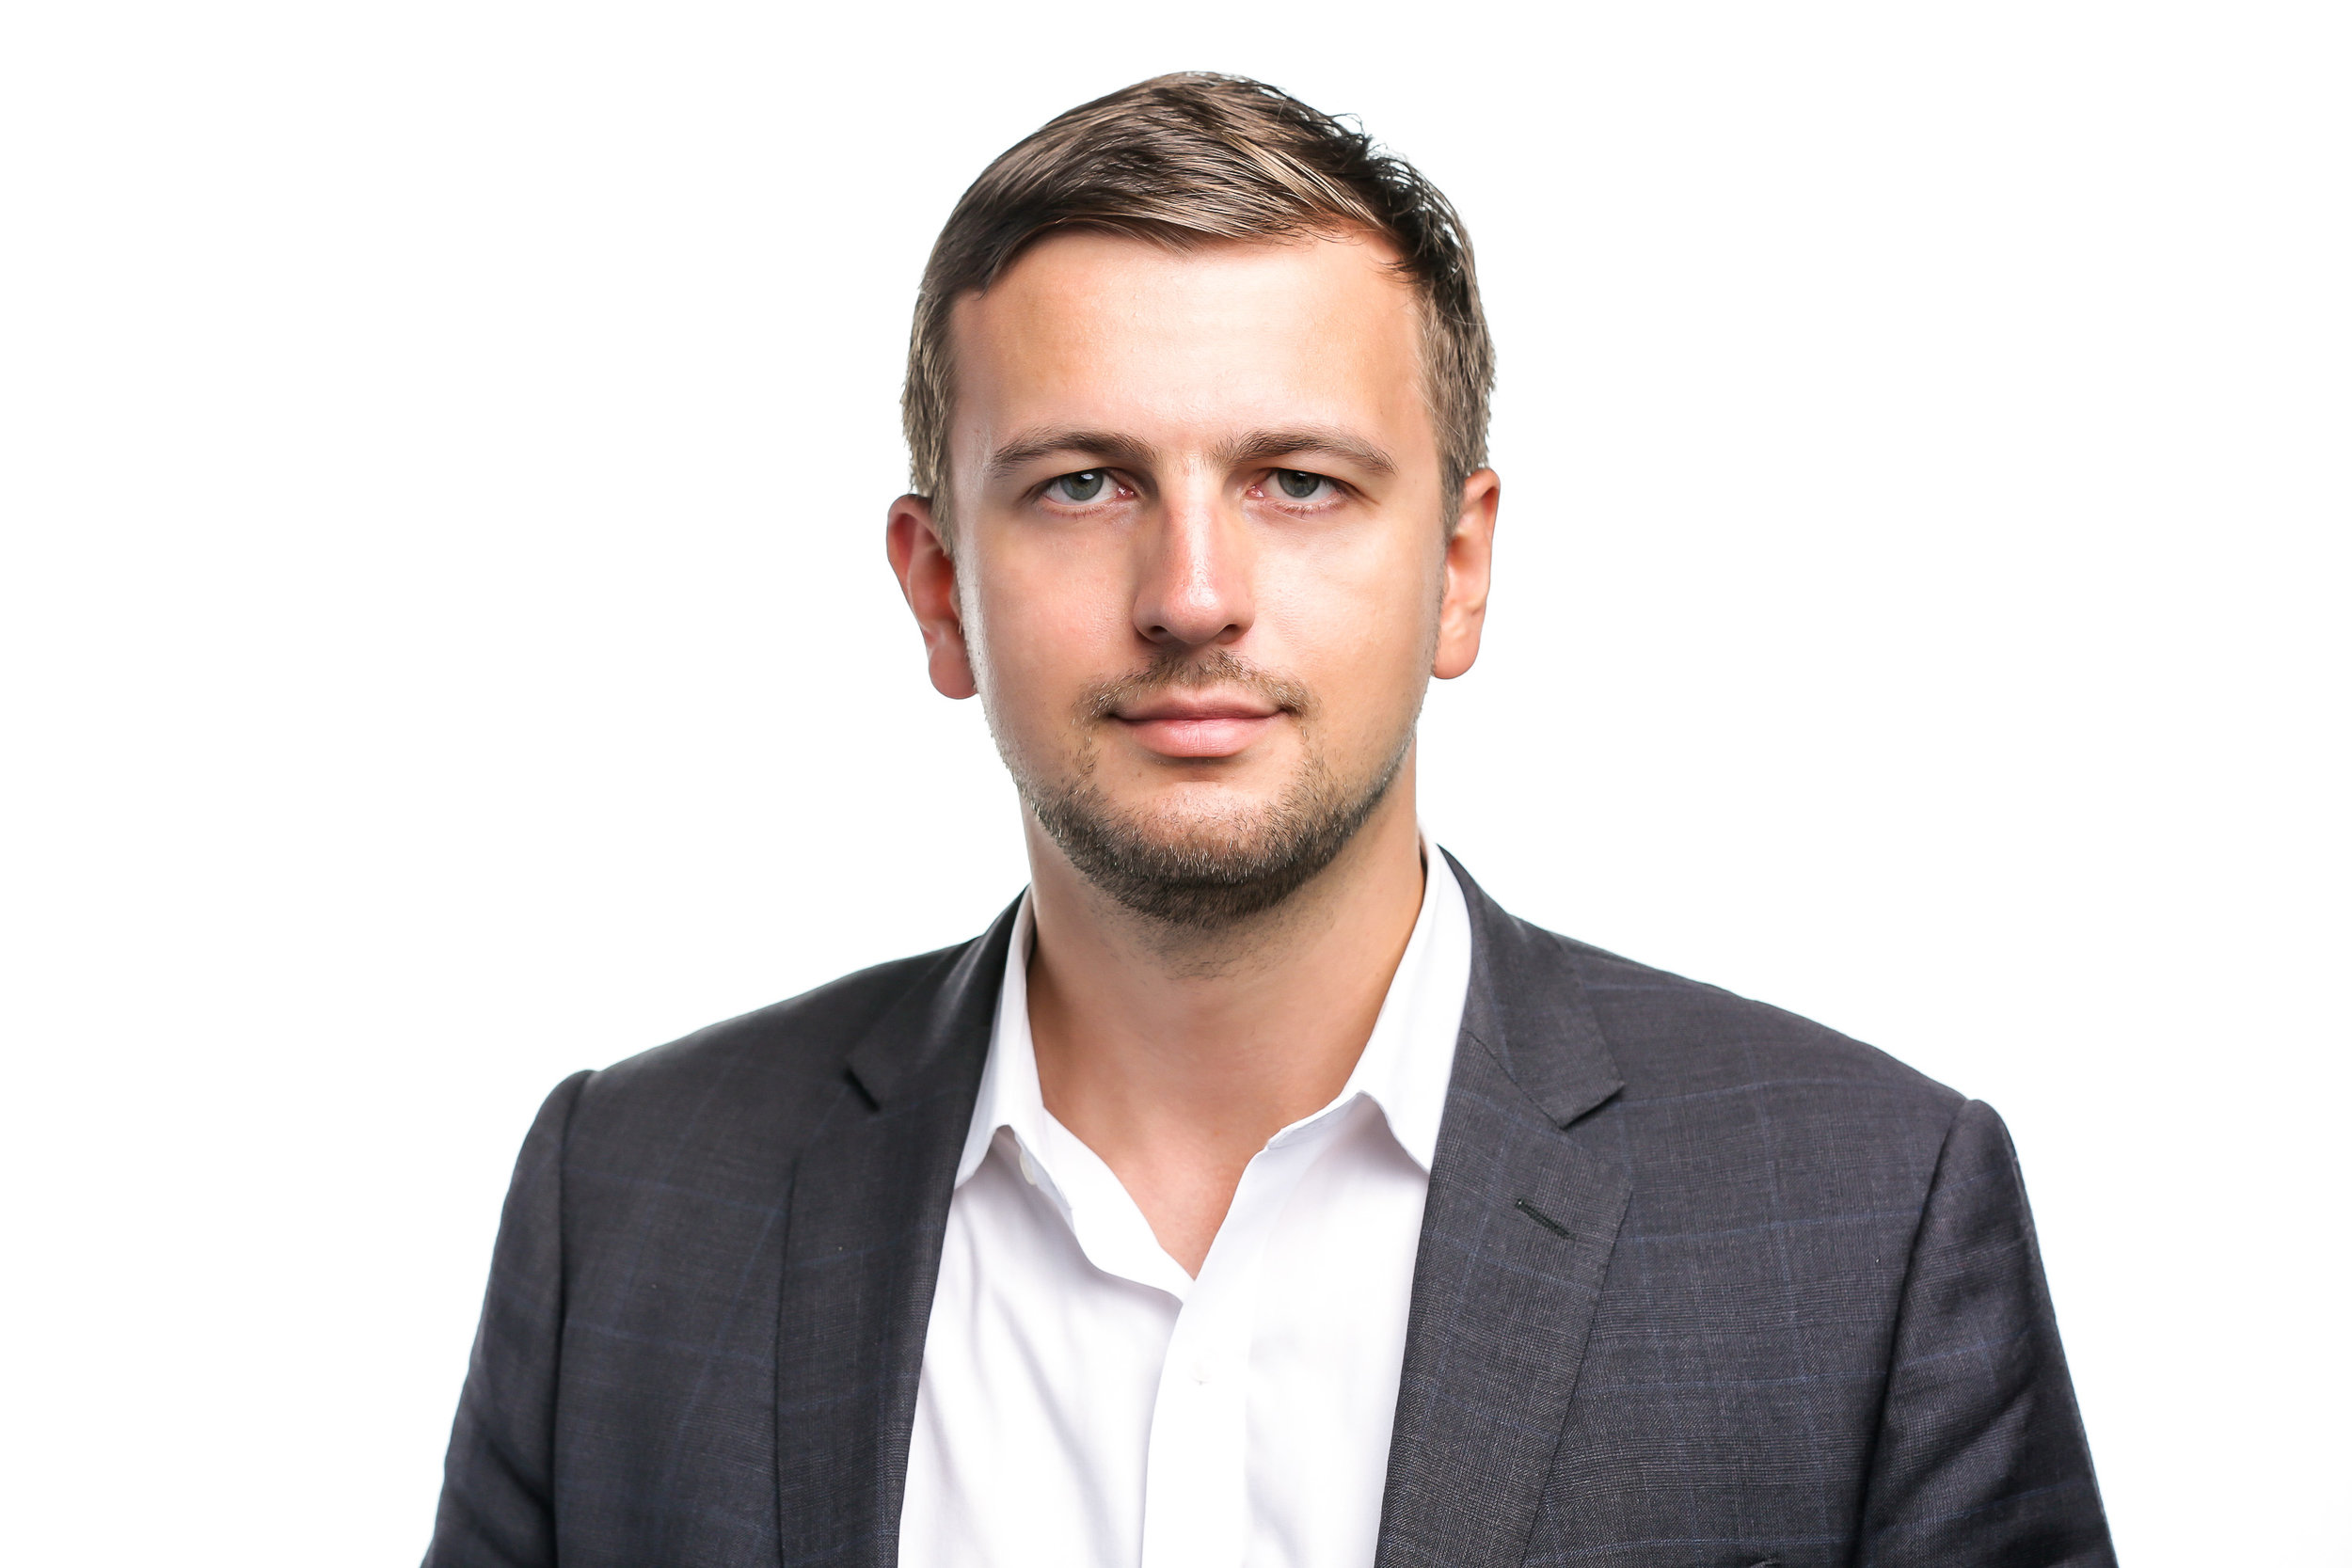 DMITRY FOTIYEV  Managing Partner at Brightmore Capital